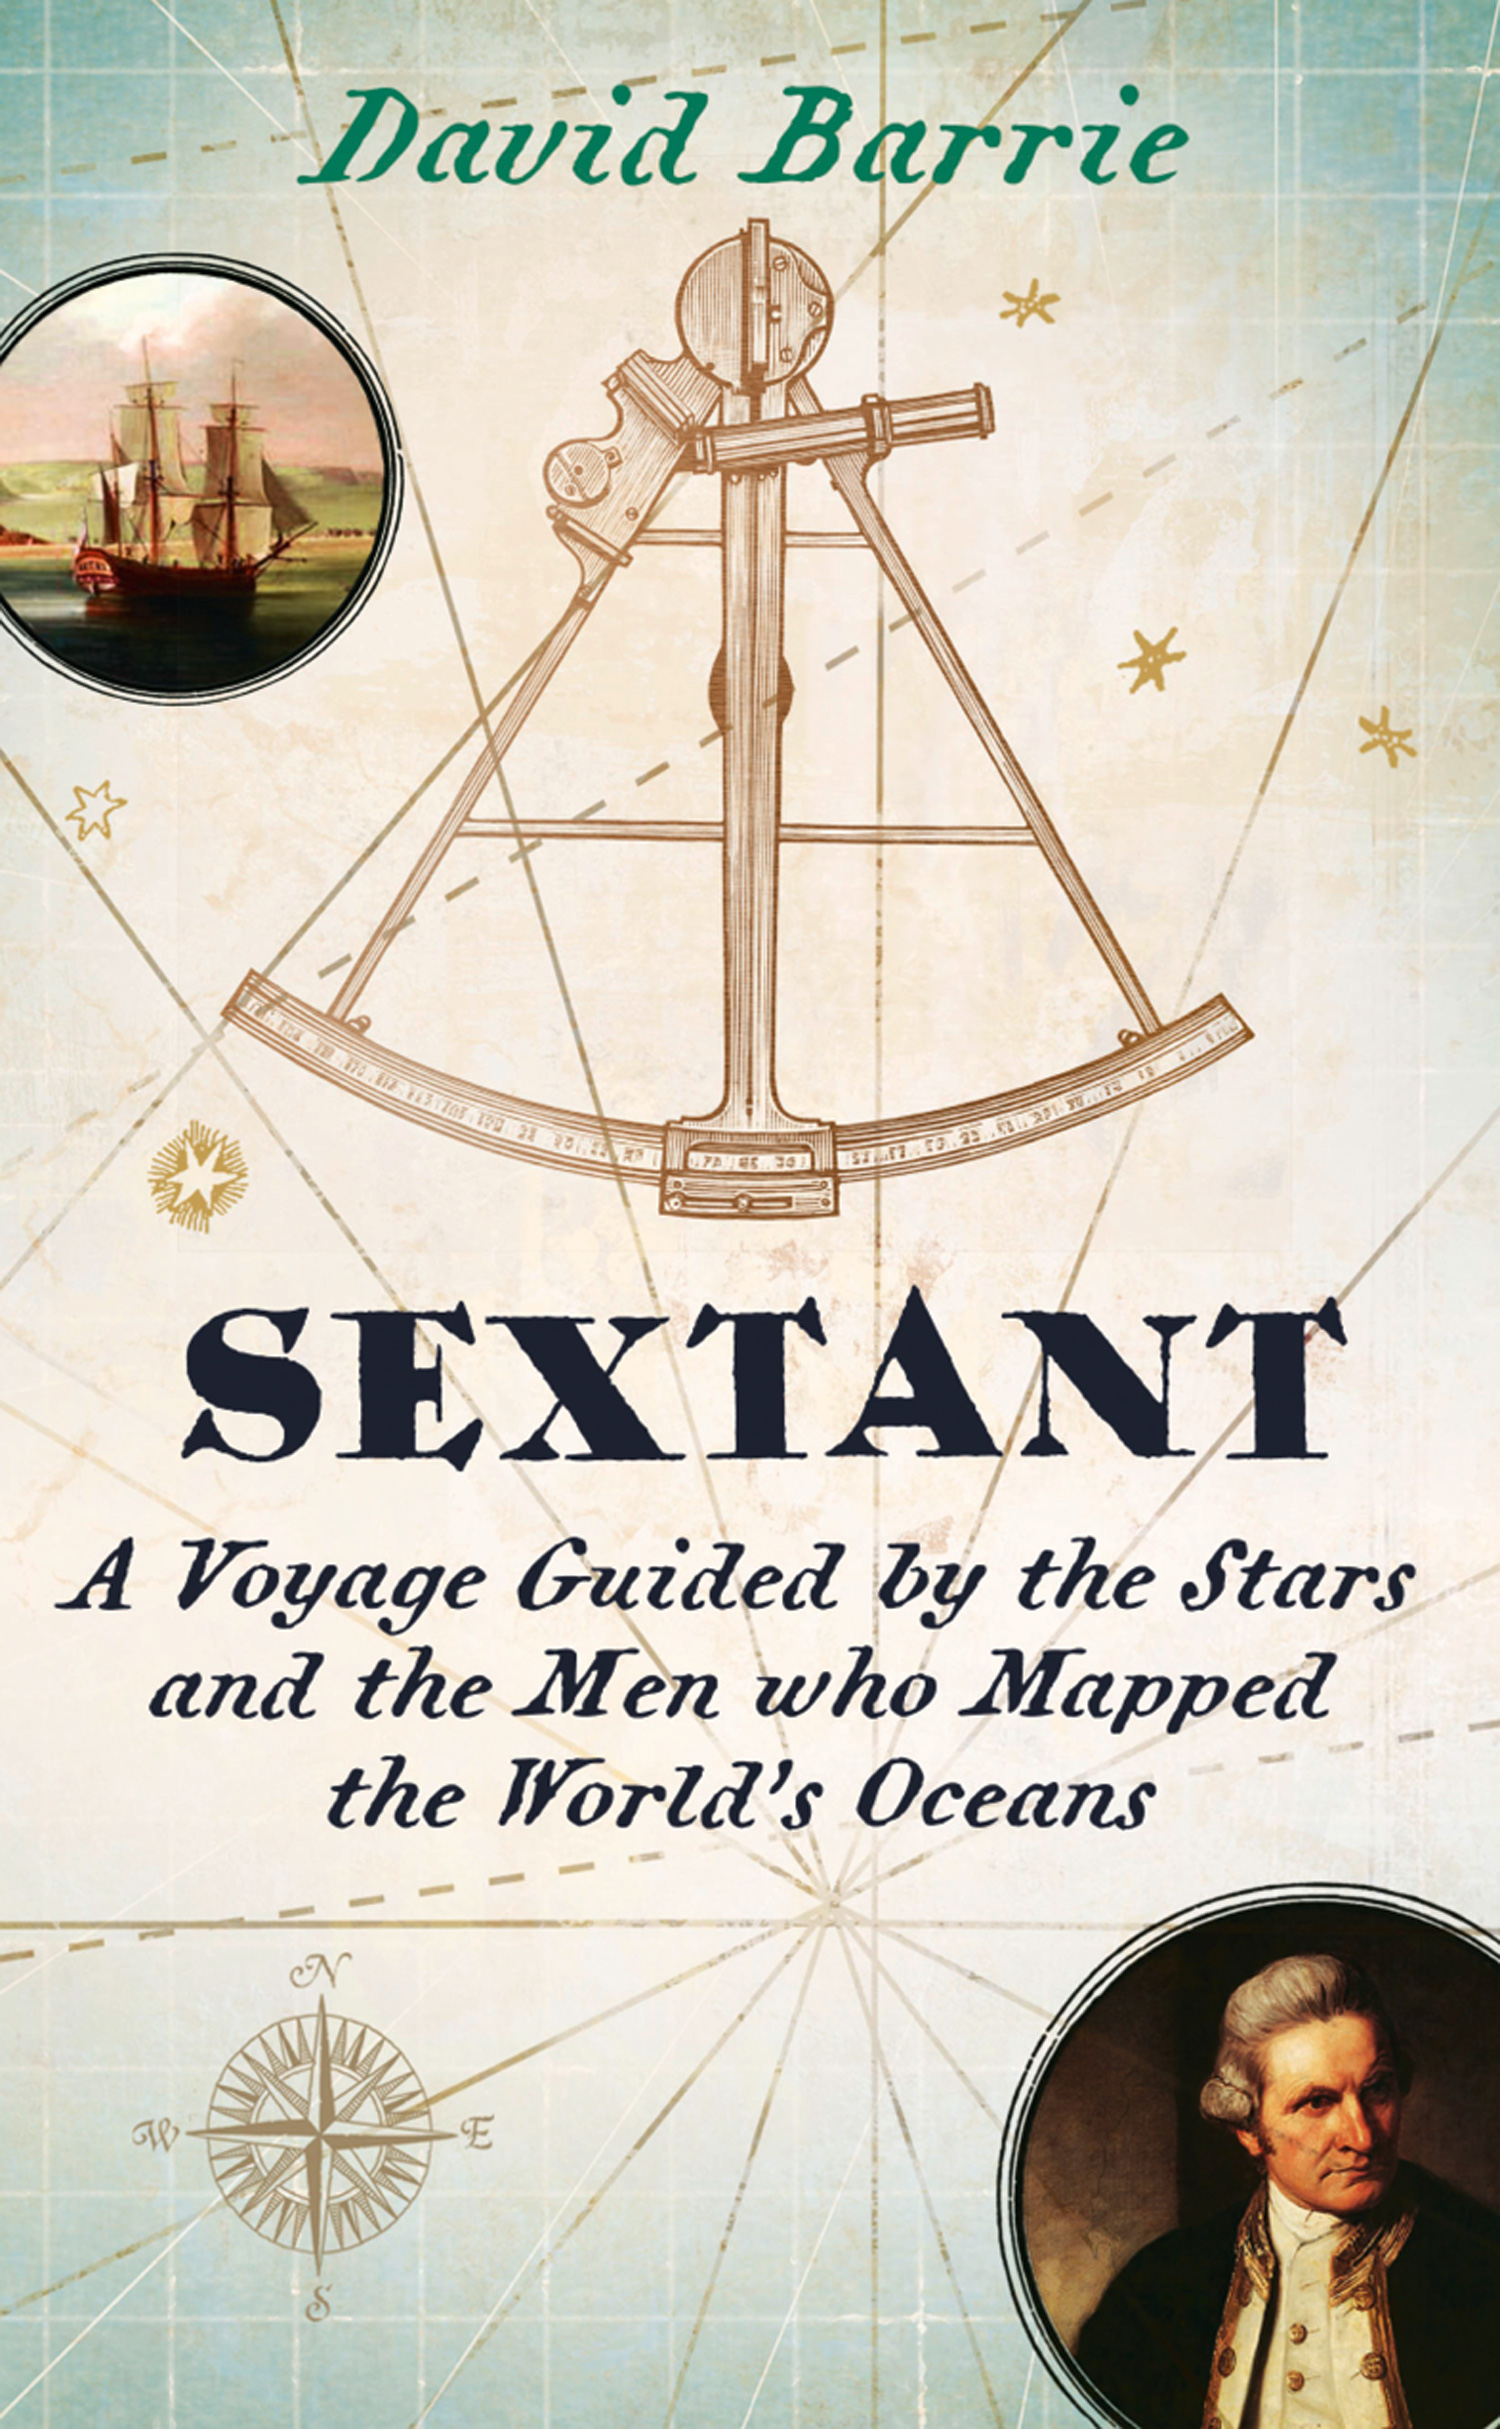 Sextant: A Voyage Guided by the Stars and the Men Who Mapped the World?s Oceans